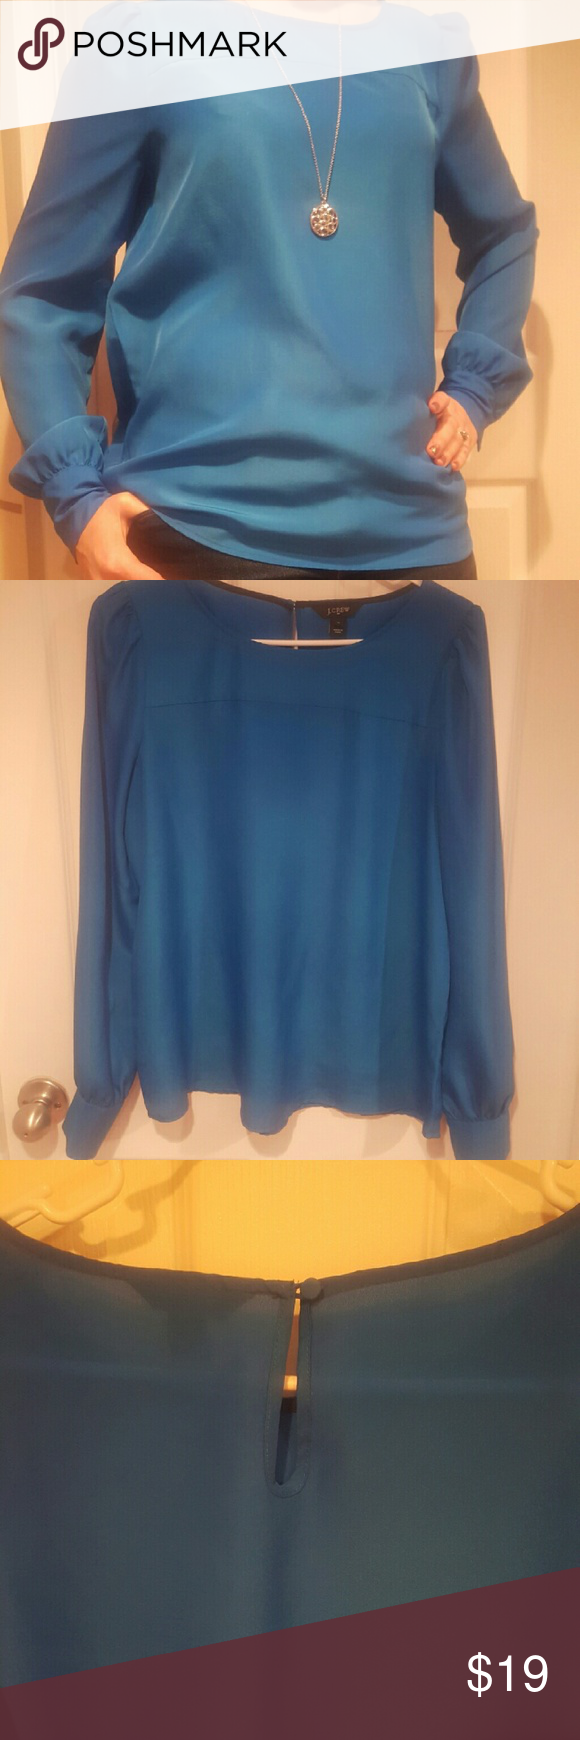 J Crew Cobalt Blue Blouse J Crew Cobalt Blue Blouse. Size Medium.   Roughing at the shoulder.   Button on closure at the back of the neck.  Two buttons on each sleeve cuff.   Excellent condition. J Crew Tops Blouses